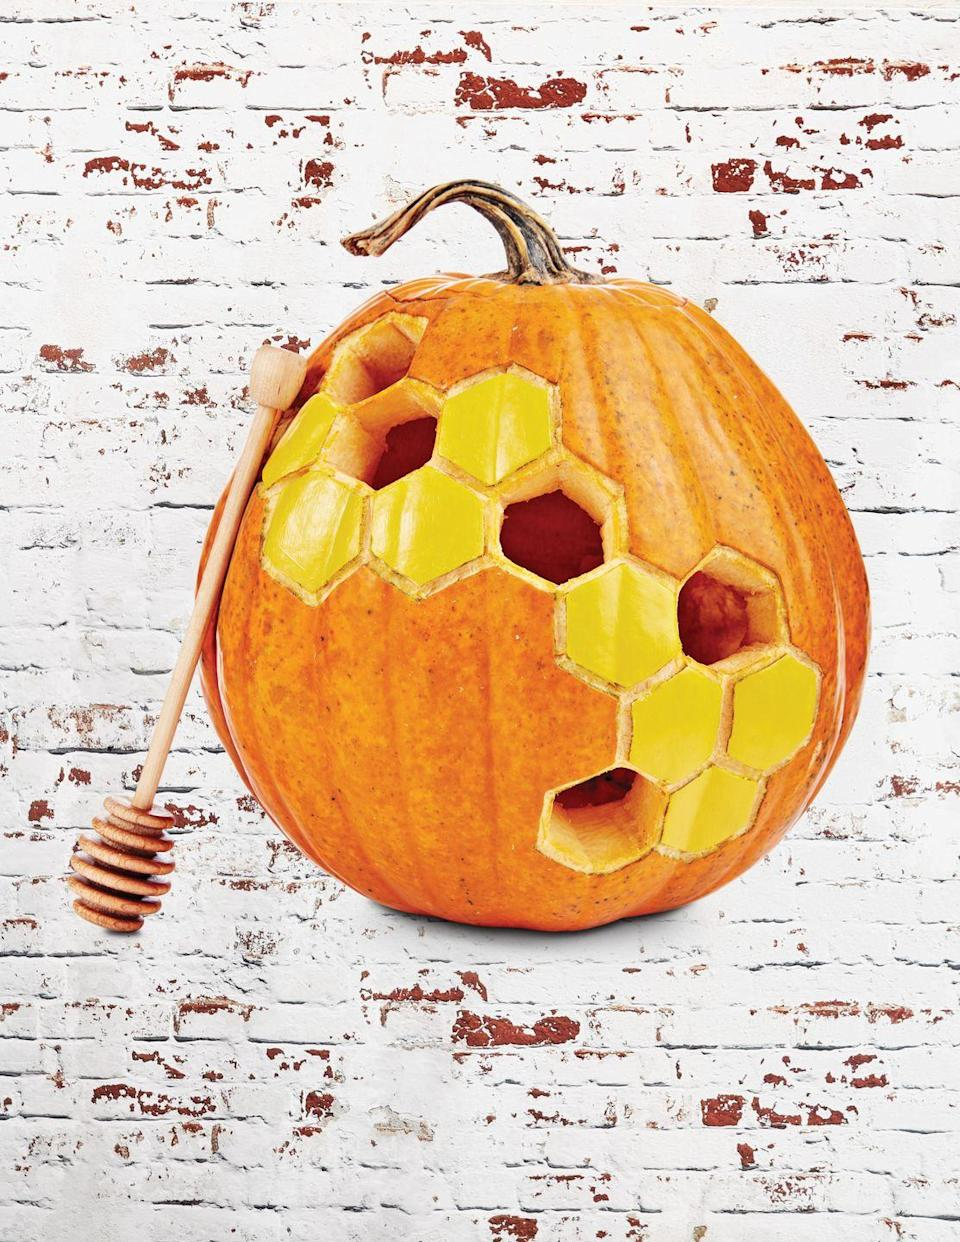 """<p>It's cute, fun, and just a little bit different. This honeycomb pumpkin is an easy alternative to the more intricate <a href=""""https://www.countryliving.com/diy-crafts/g279/pumpkin-carving-ideas/"""" rel=""""nofollow noopener"""" target=""""_blank"""" data-ylk=""""slk:carving"""" class=""""link rapid-noclick-resp"""">carving</a> designs out there.</p><p><strong>Make the honeycomb pumpkin:</strong> Cut a hole in the bottom of a medium orange pumpkin; scoop out pulp and seeds. Draw a honeycomb pattern on the front; etch out. Cut out a few of the combs and paint the remaining combs with yellow craft paint. Lean a honey dipper against its side. </p>"""